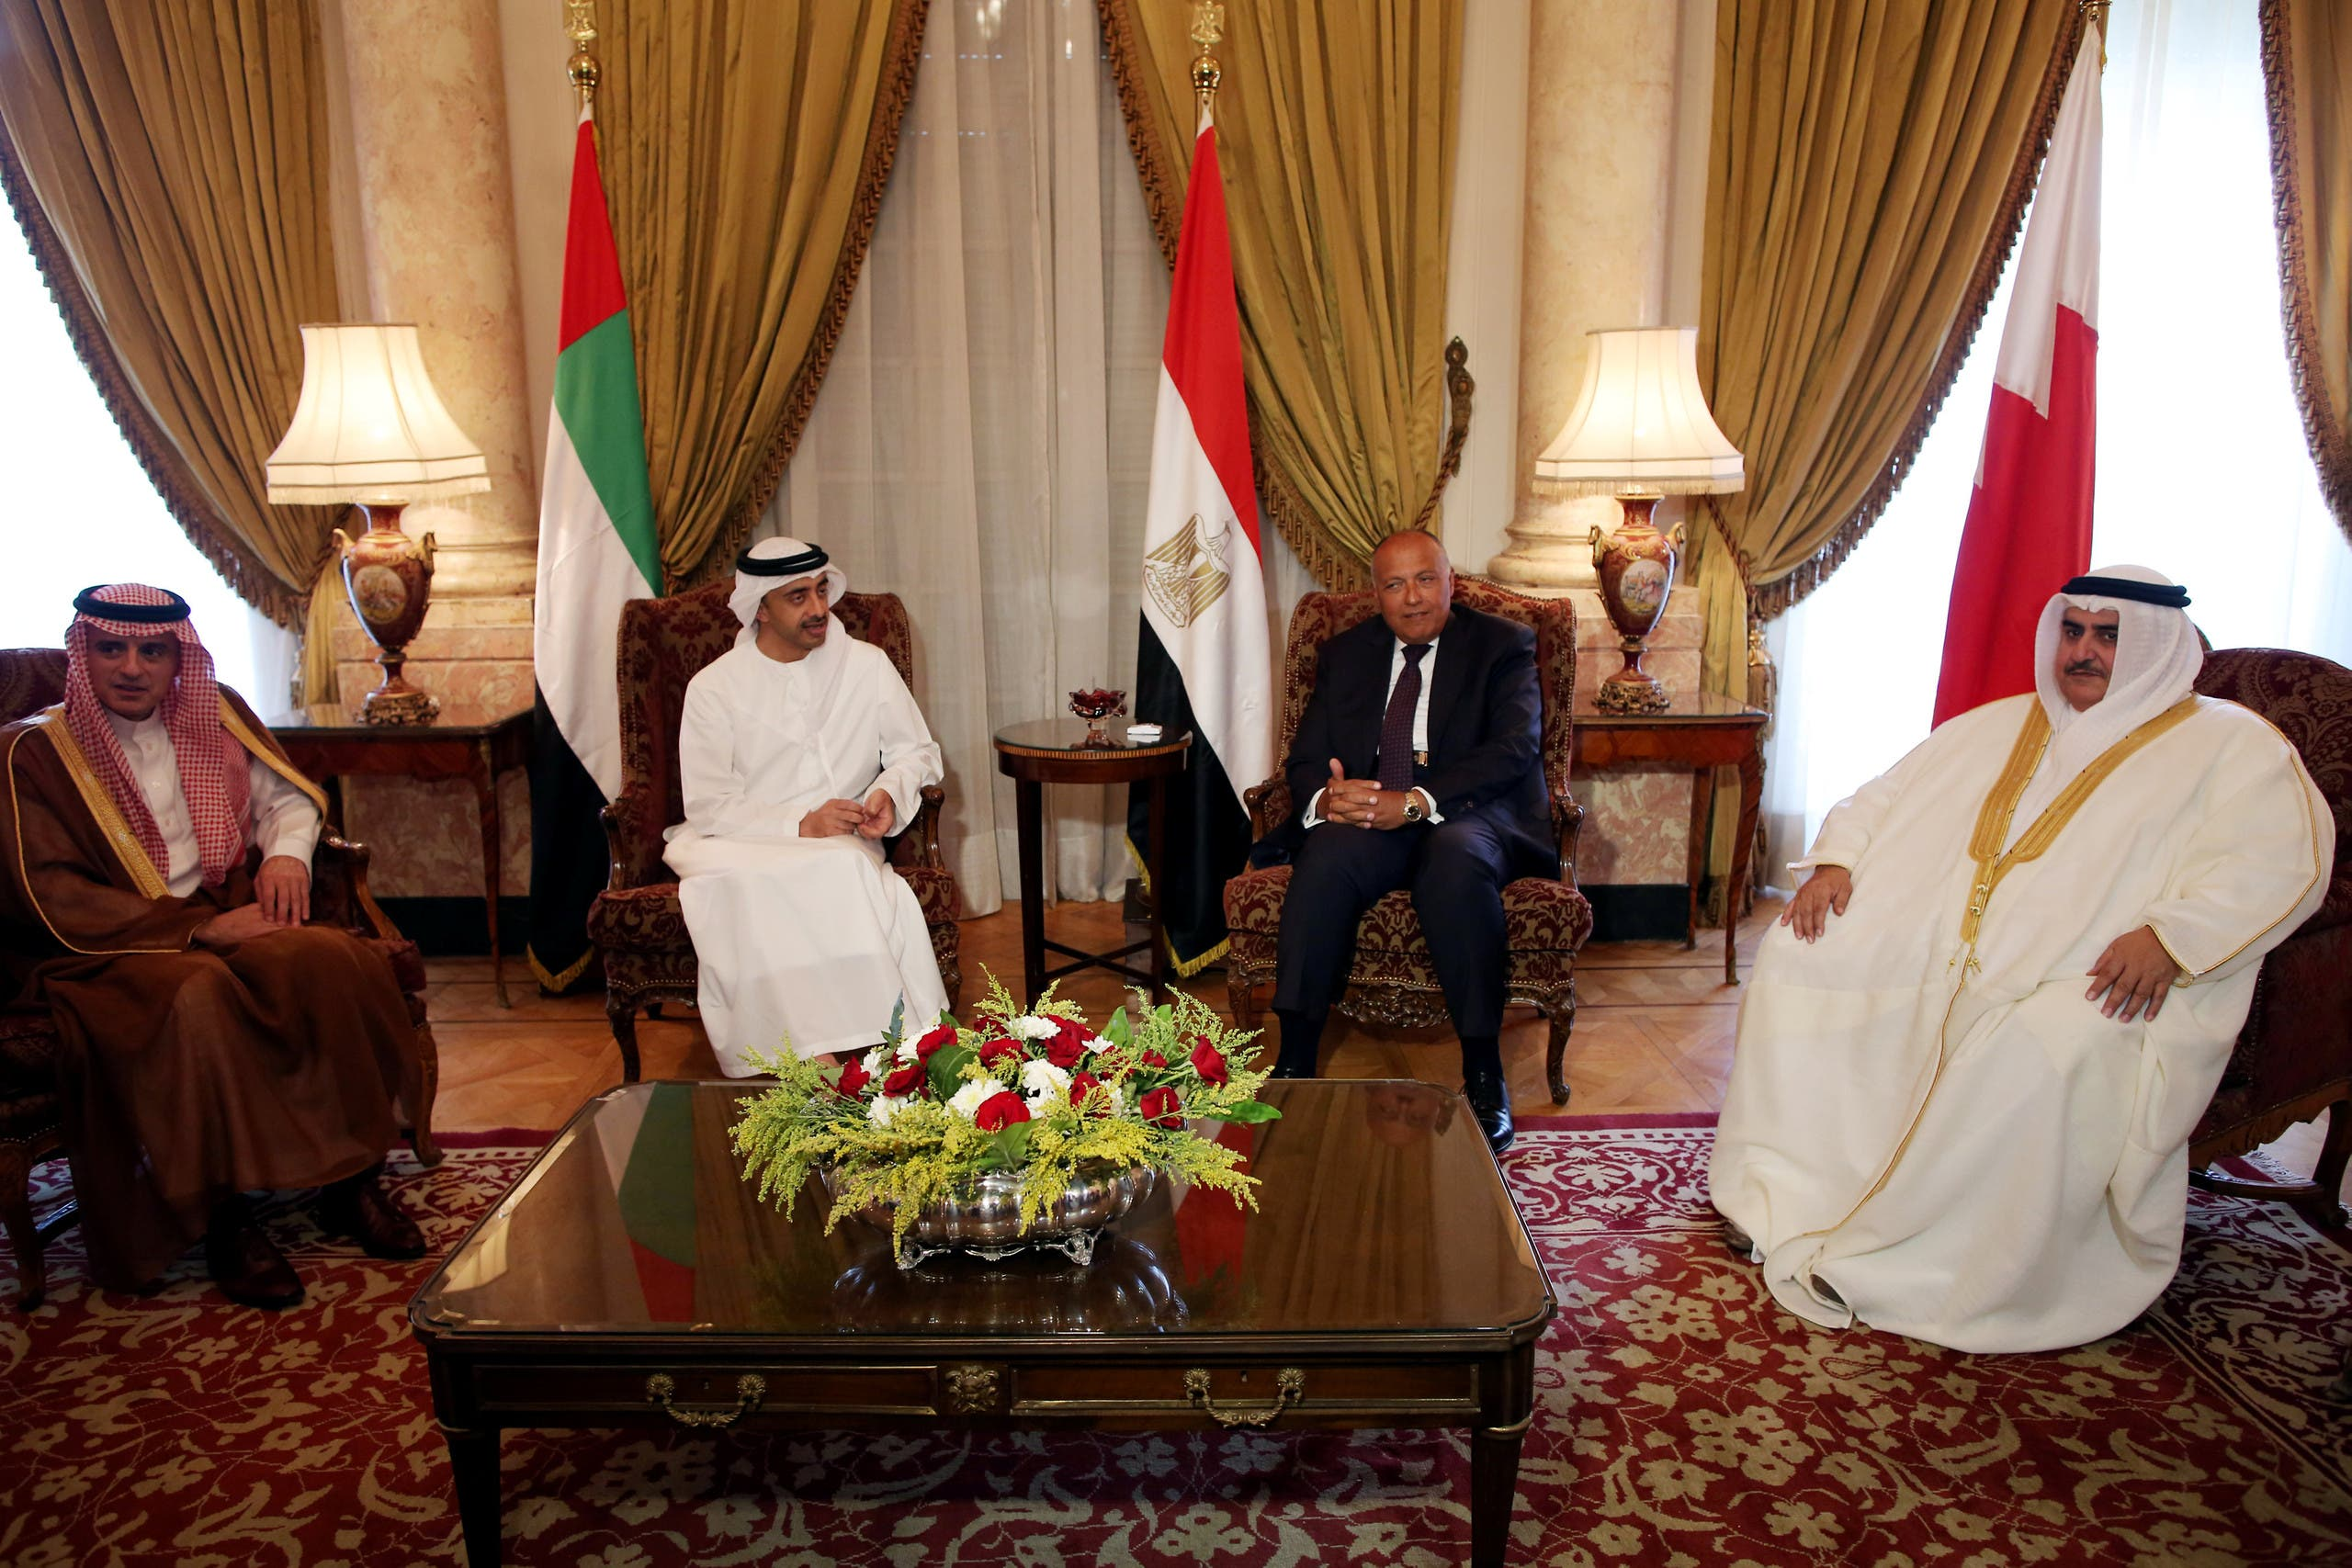 Saudi Foreign Minister Adel al-Jubeir (L), UAE Foreign Minister Abdullah bin Zayed al-Nahyan (C-L), Egyptian Foreign Minister Sameh Shoukry (C-R), and Bahraini Foreign Minister Khalid bin Ahmed al-Khalifa meet to discuss the diplomatic situation with Qatar, in Cairo, Egypt, July 5, 2017. The Foreign Ministers meetingis held after Qatar sent a formal letter of response to the 13-points list of demands to the emir of Kuwait, the main mediator in the Gulf crisis, in response to diplomatic and economic sanctions from Saudi Arabia and its allies, Egypt, the United Arab Emirates (UAE) and Bahrain on allegations that Qatar is funding extremism